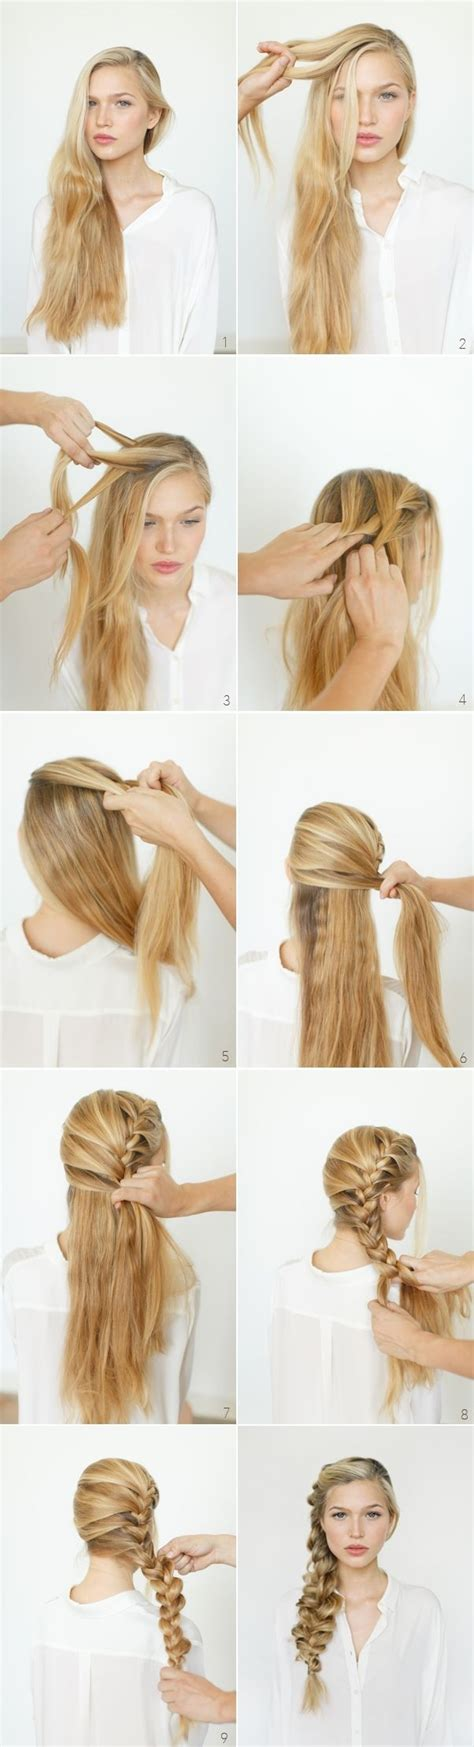 10 Pretty and Chic Braided Hairstyles for Girls 2016   Pretty Designs